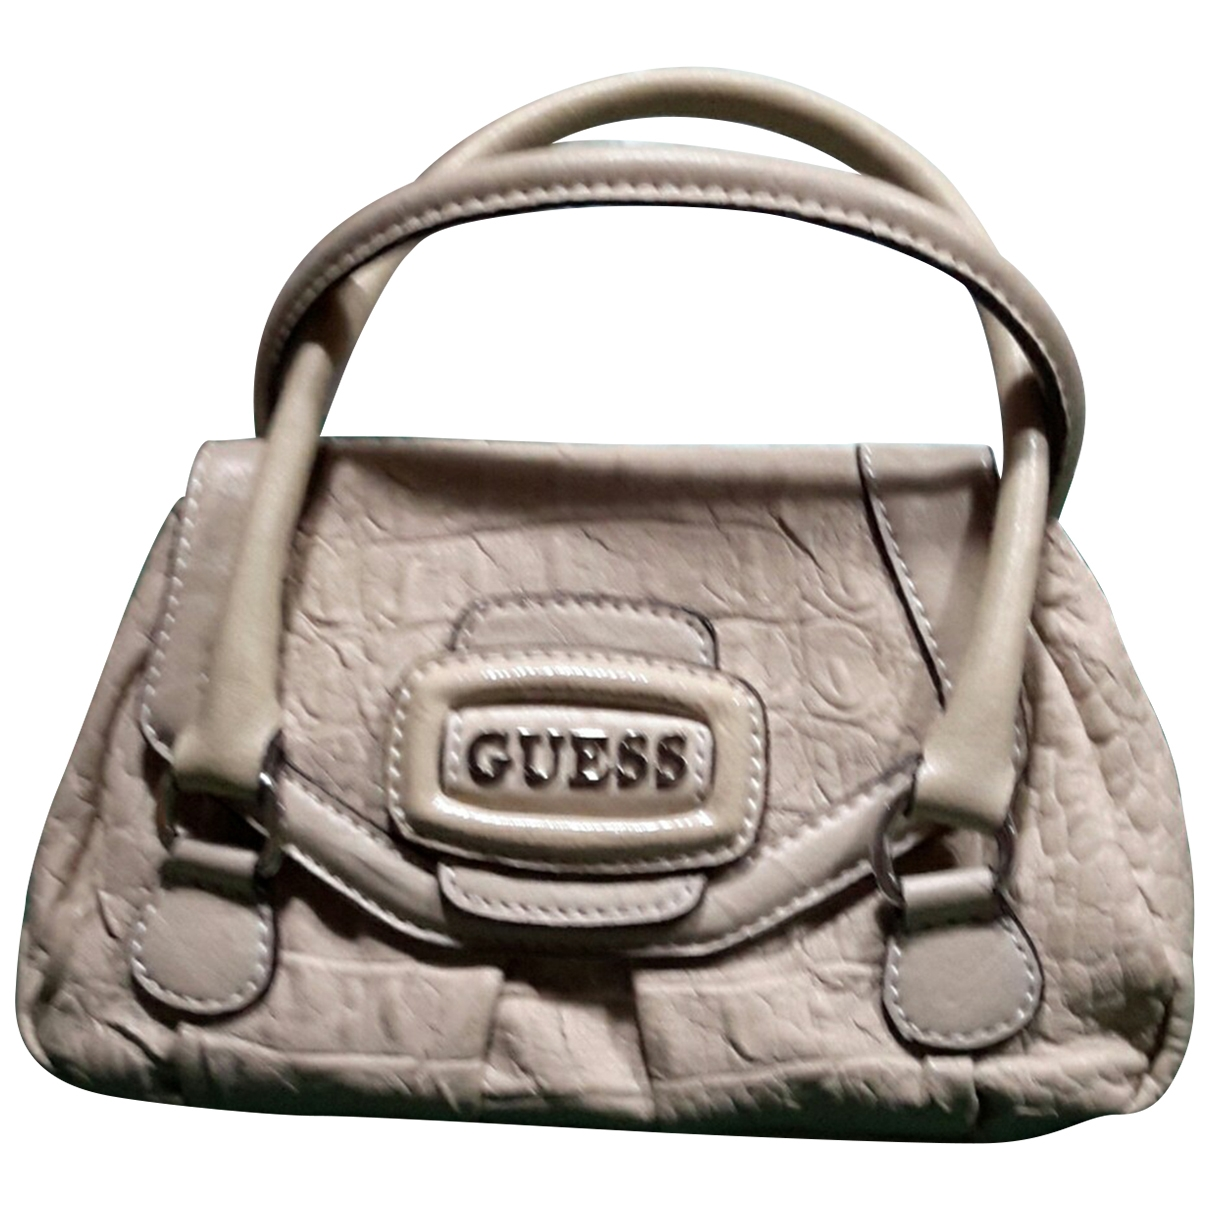 Guess \N Beige Leather bag & Pencil cases for Kids \N